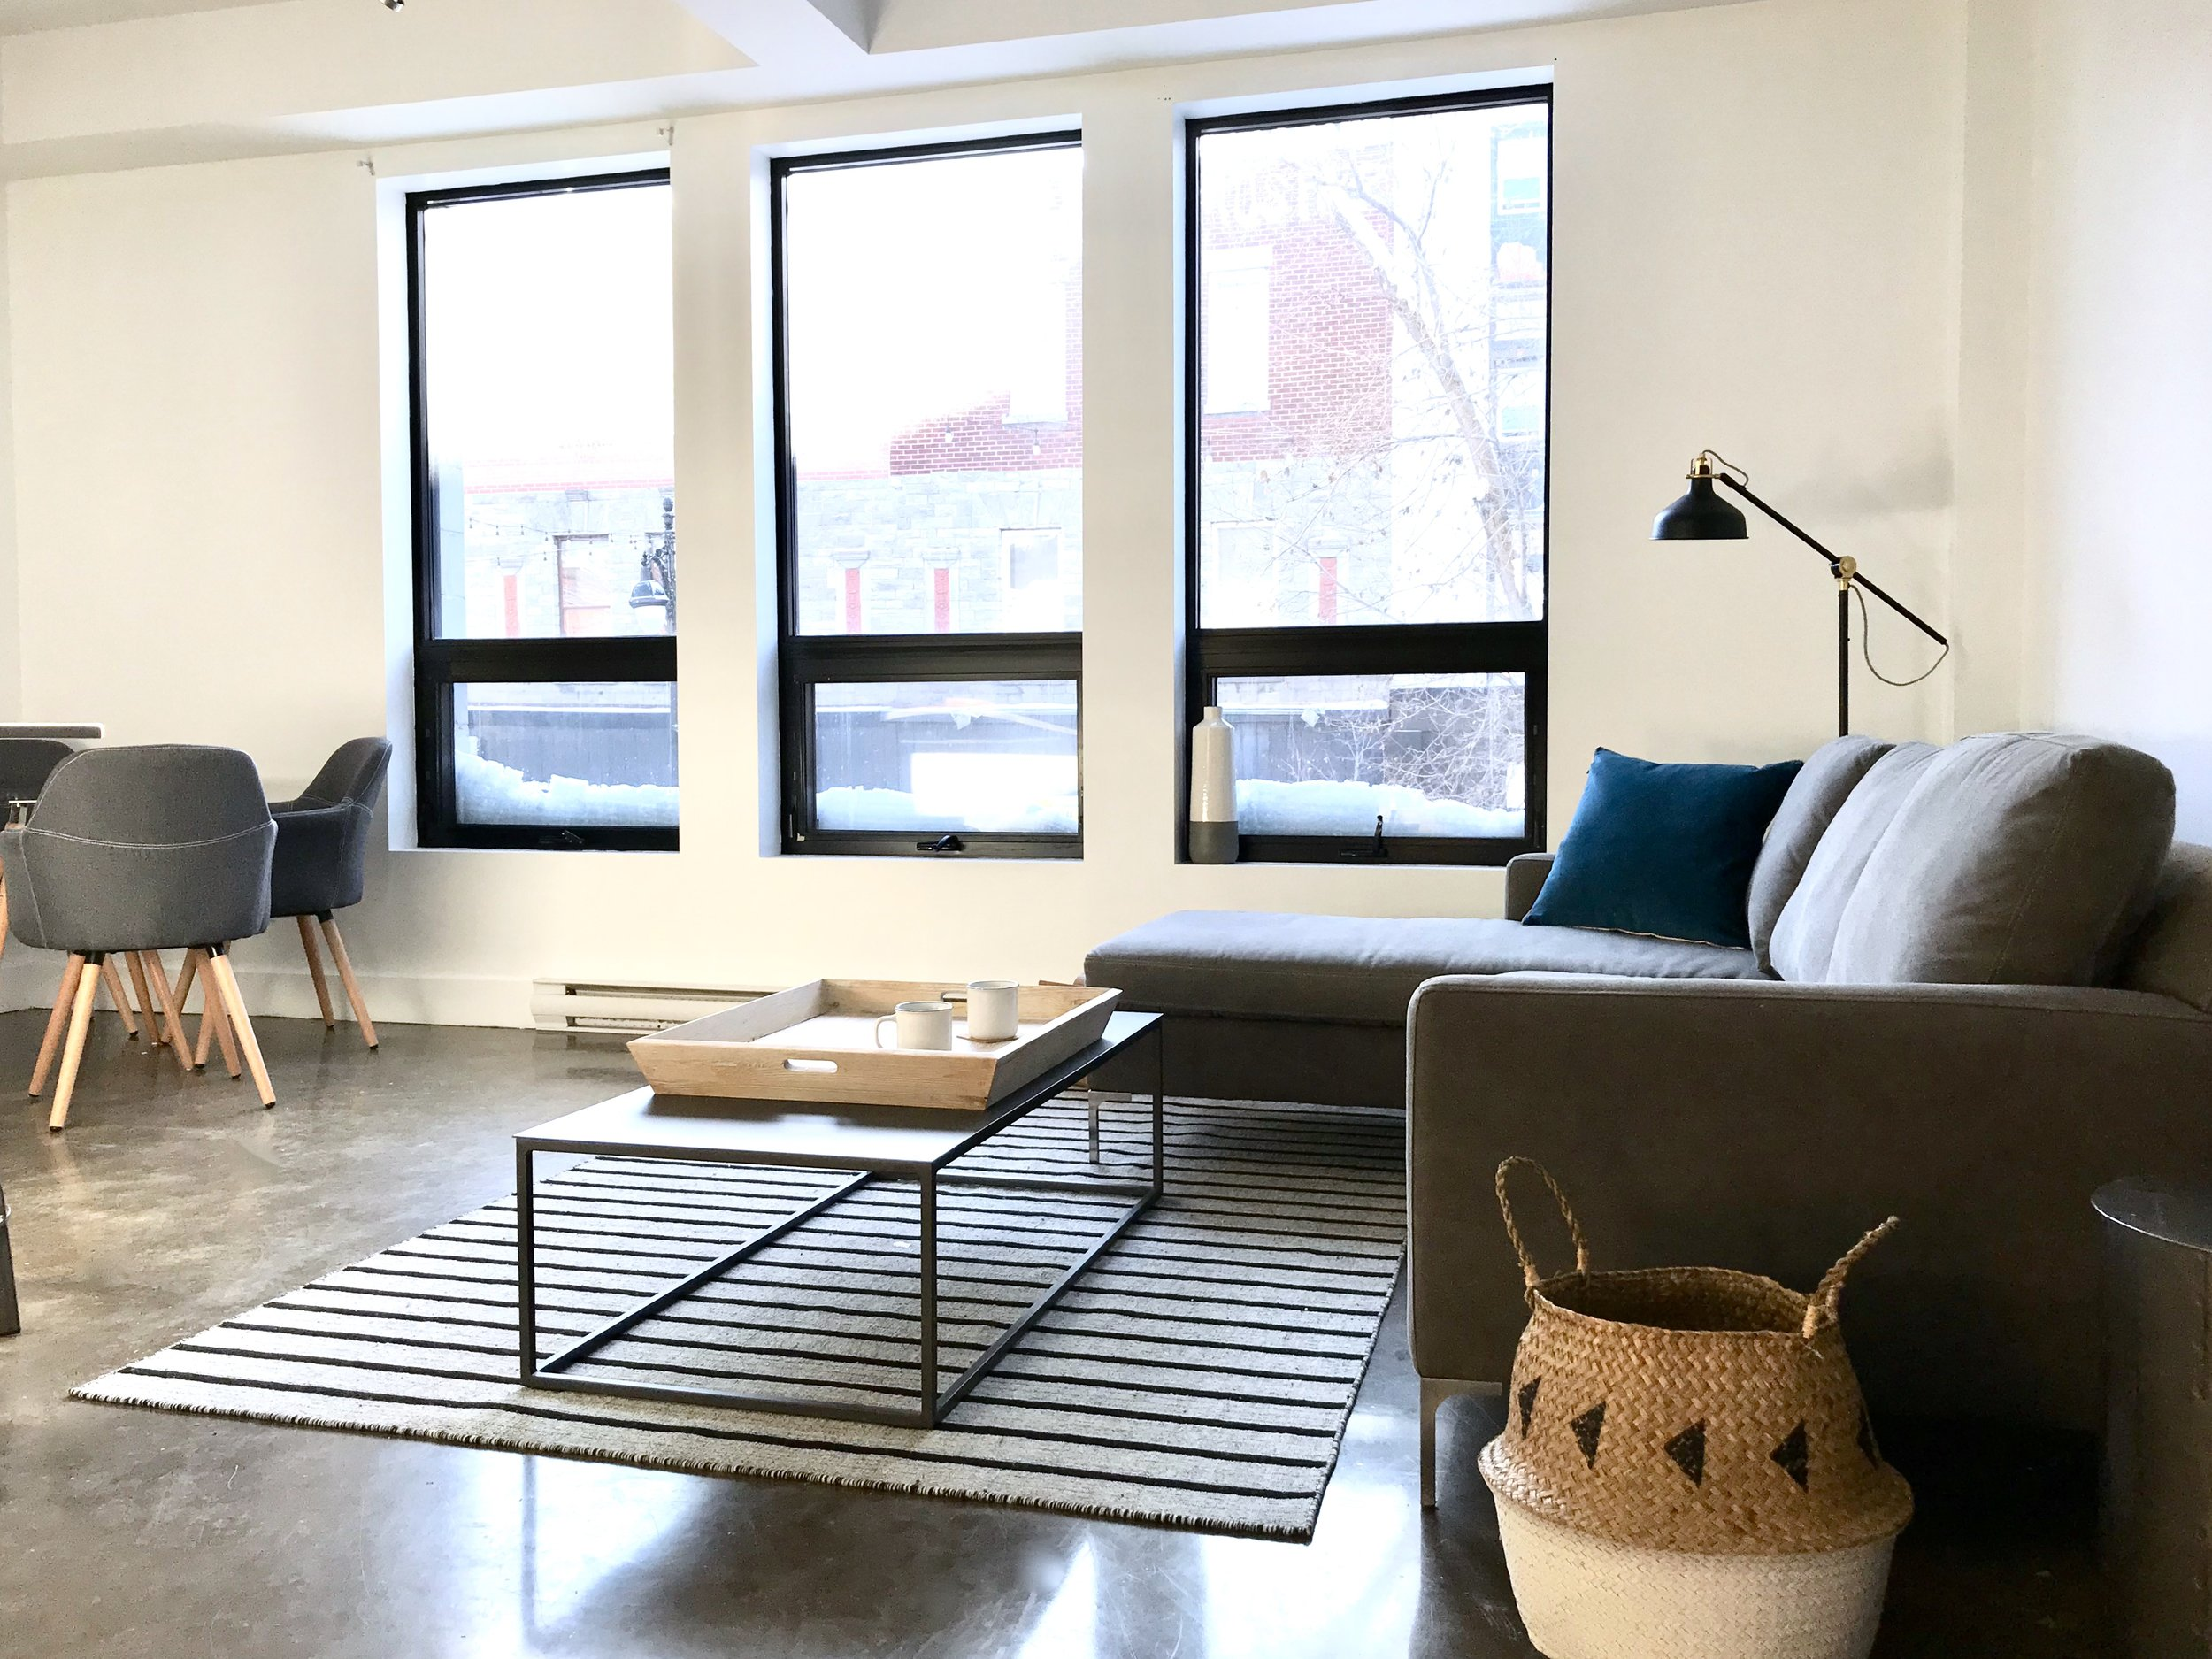 Lofts Du Main - Other than being close to over 100 restaurants, bars and coffee shops, Lofts De La Main is situated near metro stations: Sherbrooke, Mont Royal and Laurier – making it easy for you get around the city! Are you a city explorer?